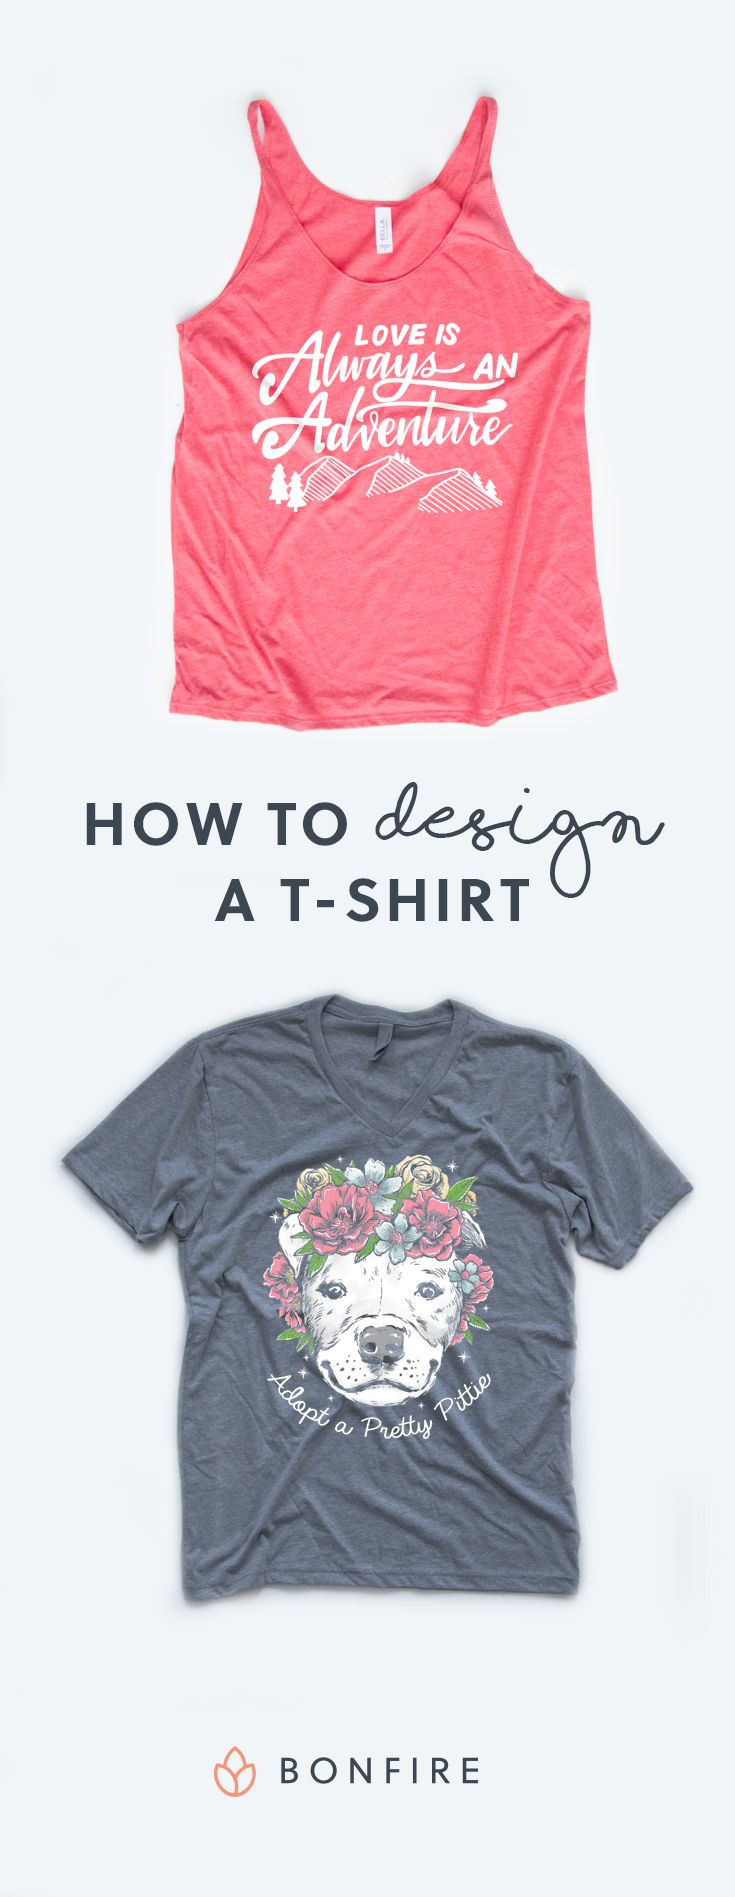 T shirt design editor online - A Beginner S Guide To Designing Awesome T Shirts Learn How To Choose Colors